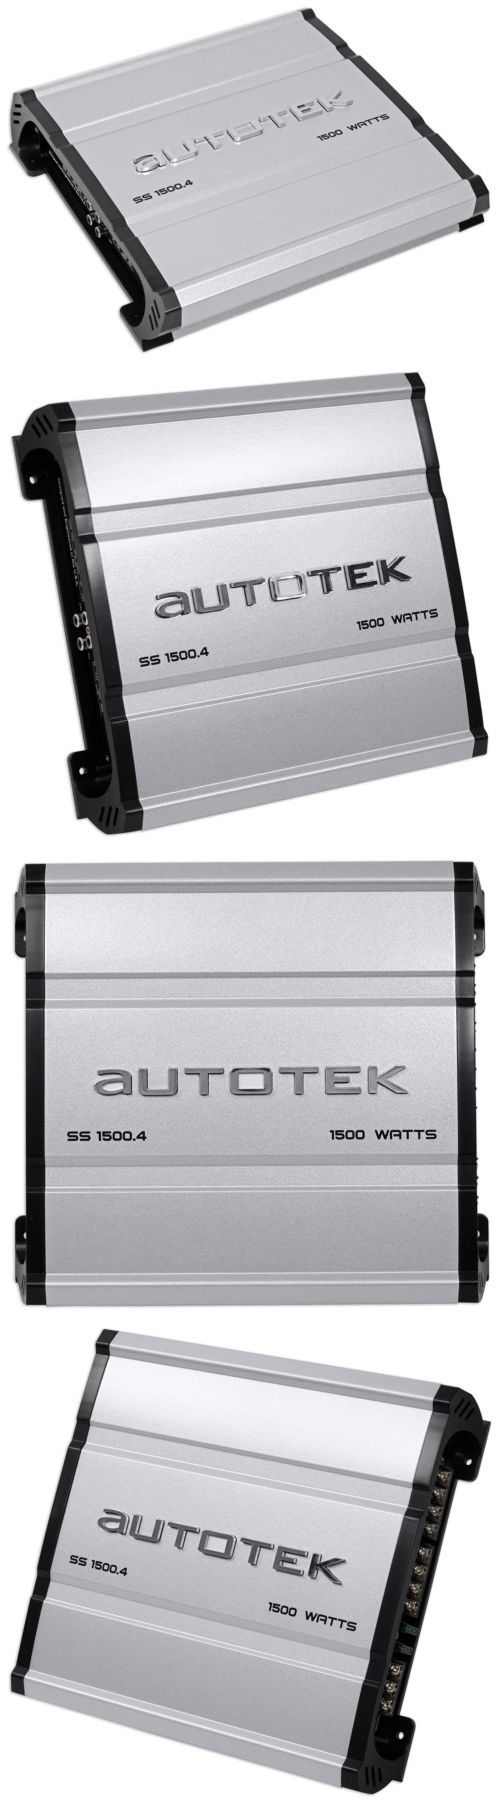 Car Amplifiers: Autotek Ss1500.4 Super Sport 1500W 4-Channel Car Audio Amplifier Class A B Amp -> BUY IT NOW ONLY: $62.95 on eBay!